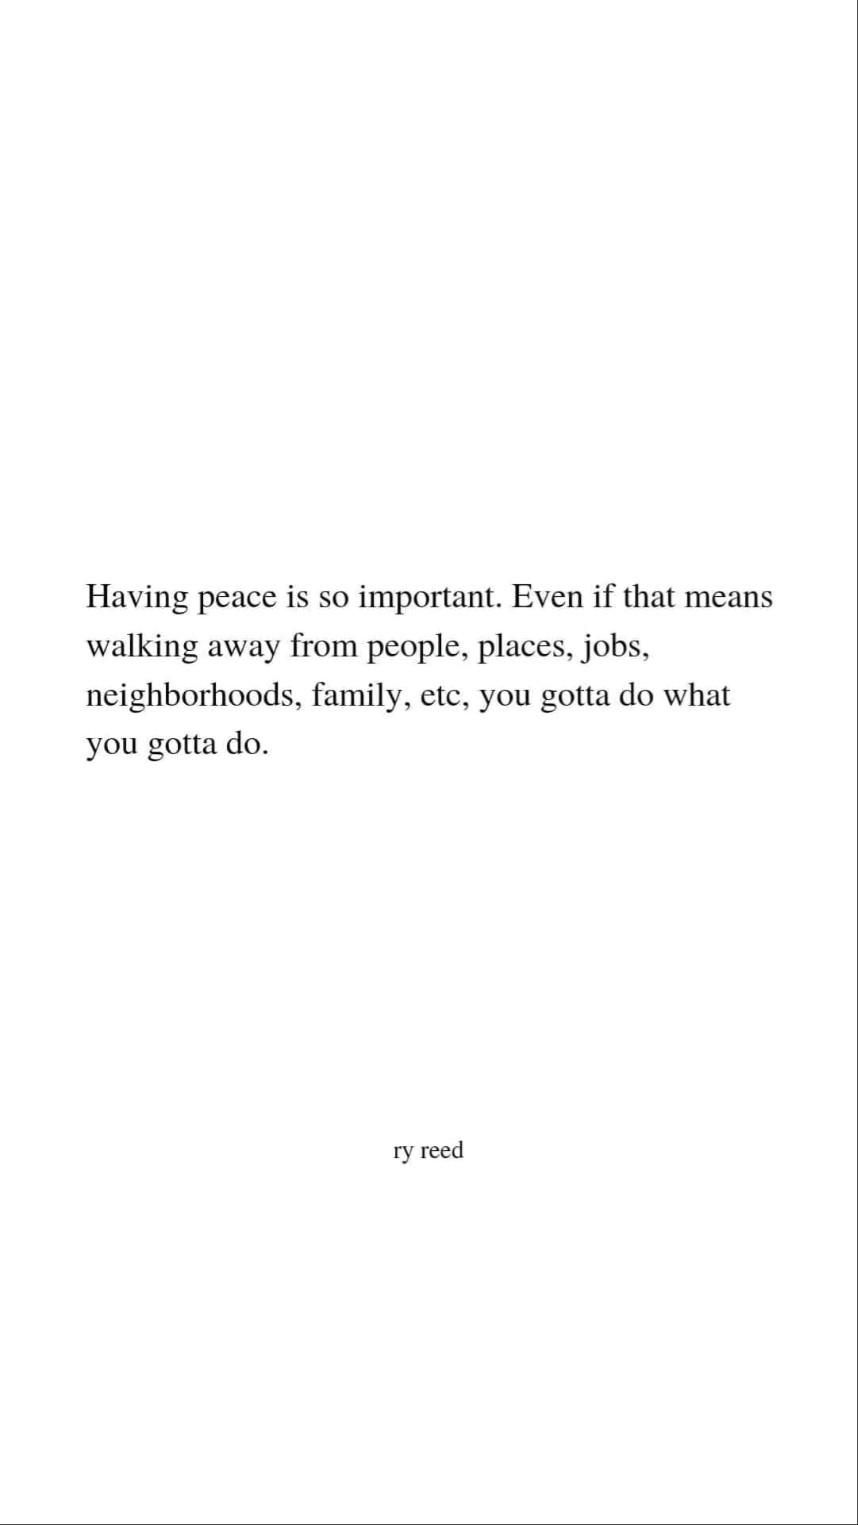 having peace is much more important